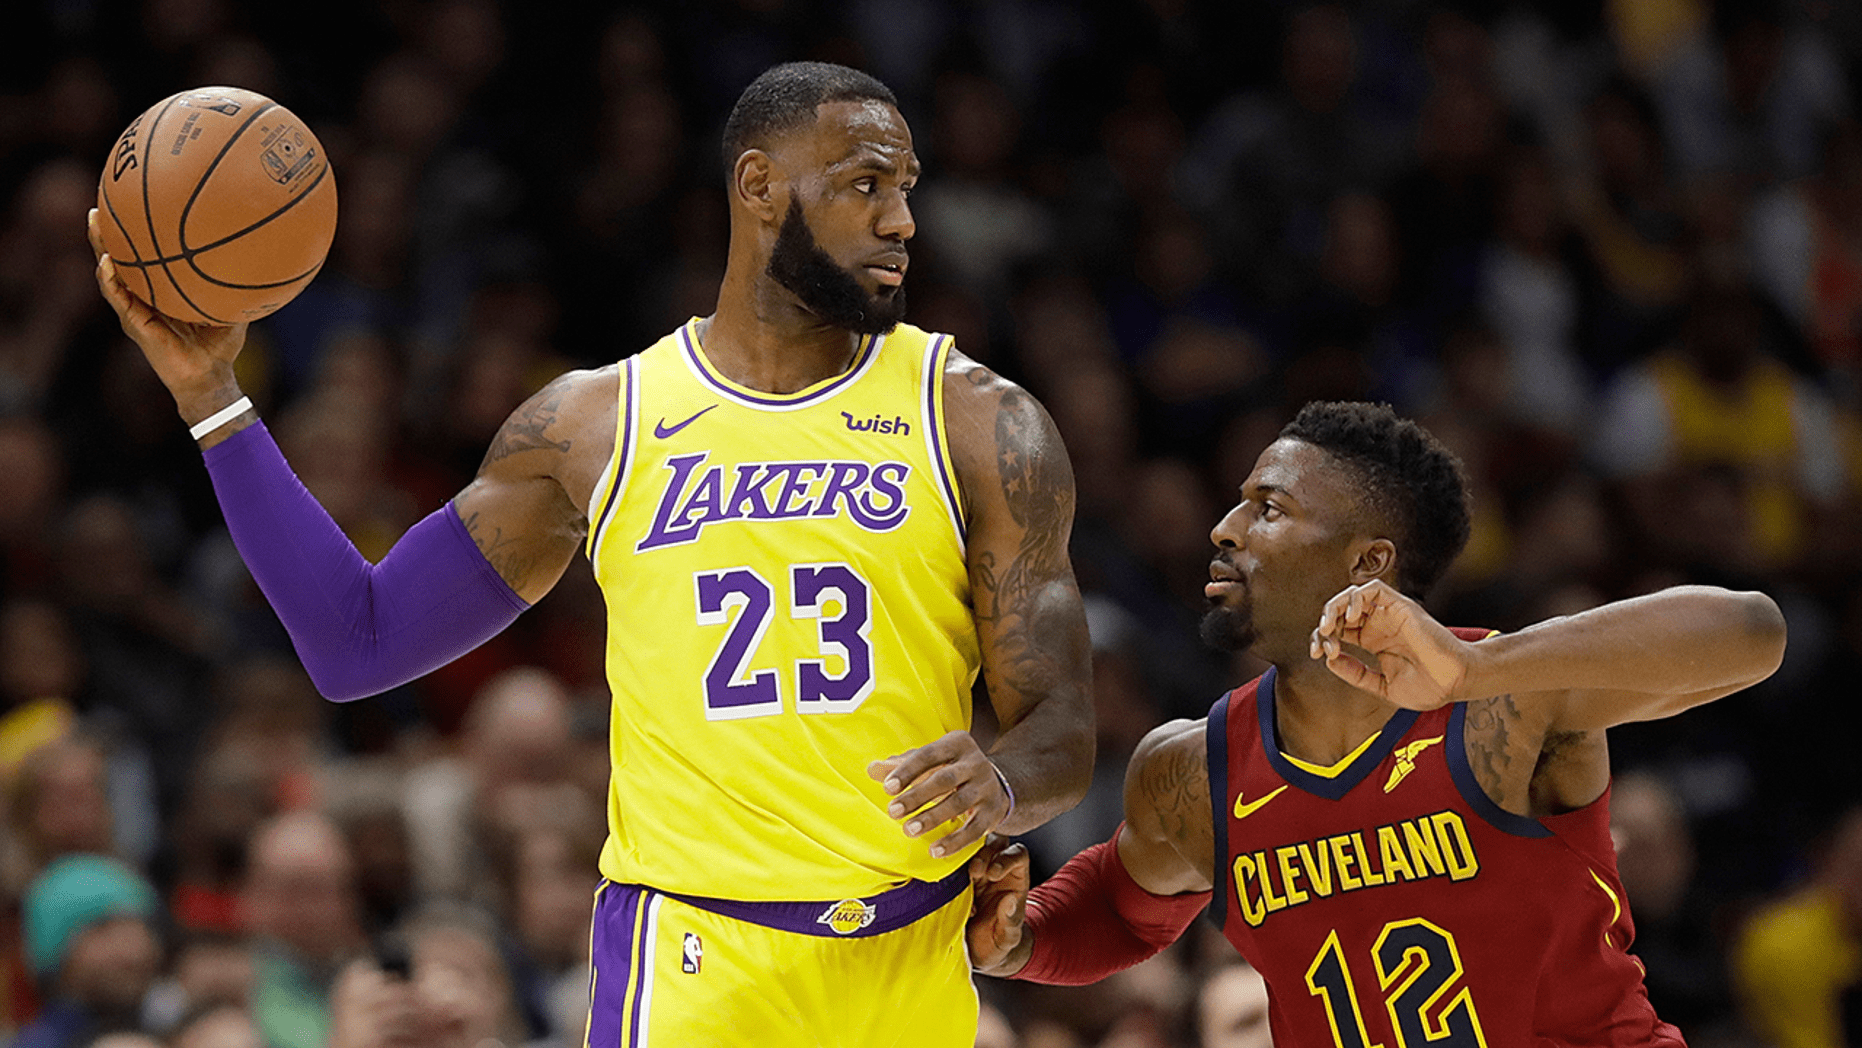 Lakers Lebron James Returns To Cleveland Gets Standing